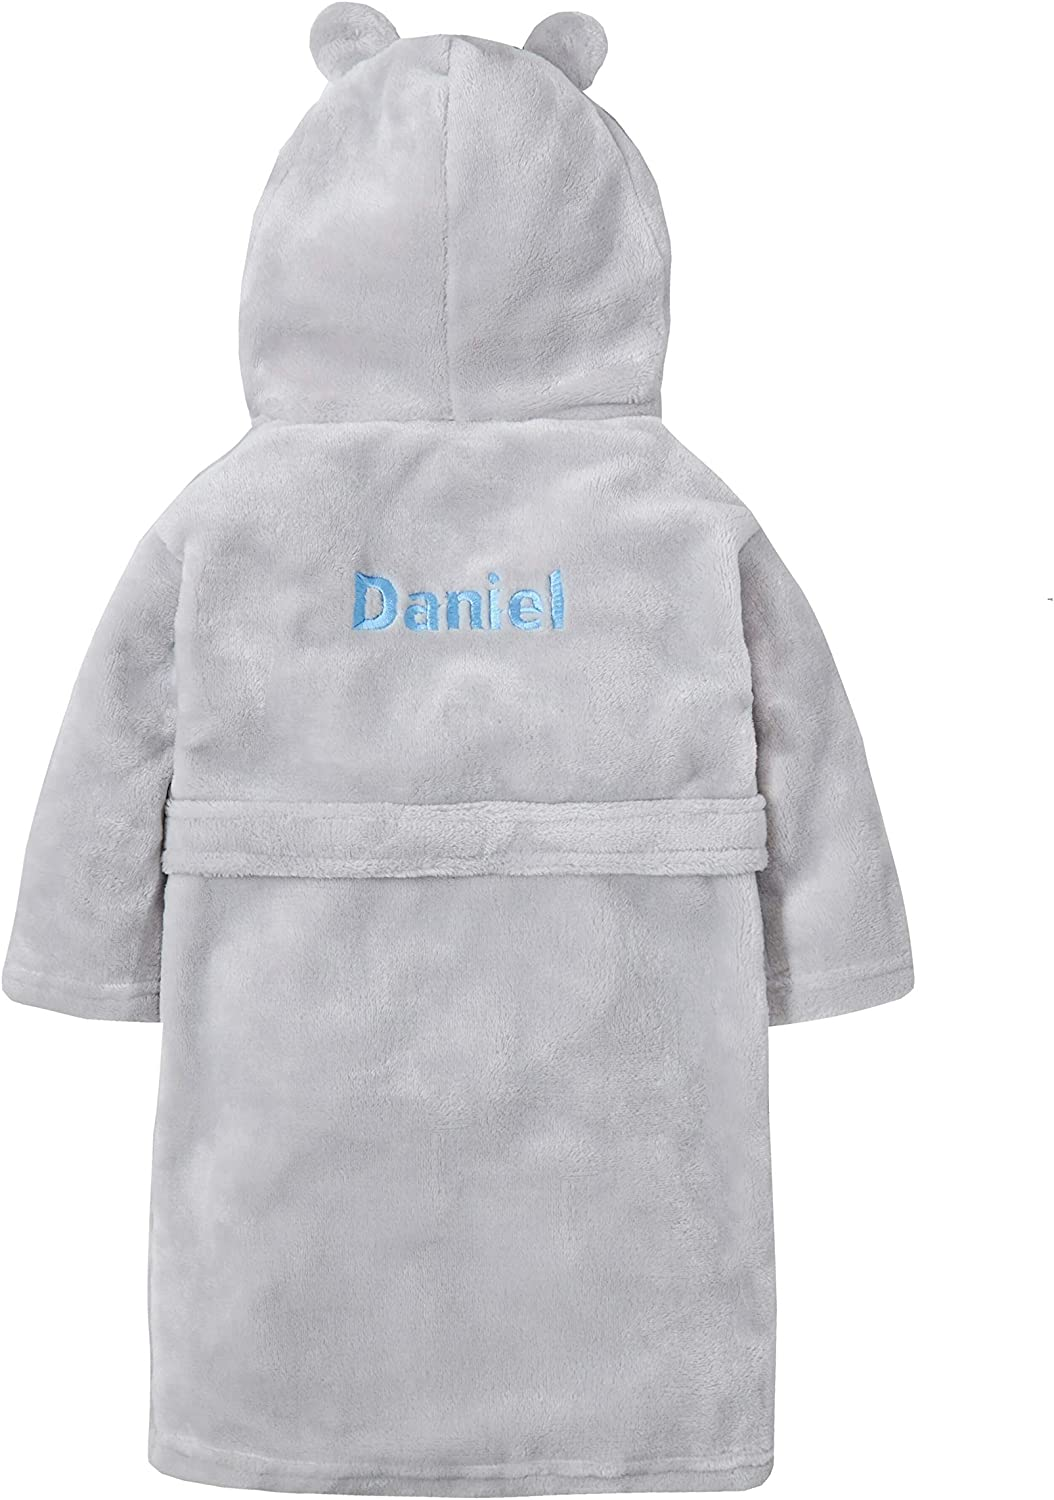 Hoolaroo Embroidered Personalised Soft Baby Blue Dressing Gown Bath Robe with Teddy Ears 6 Months-5 Years